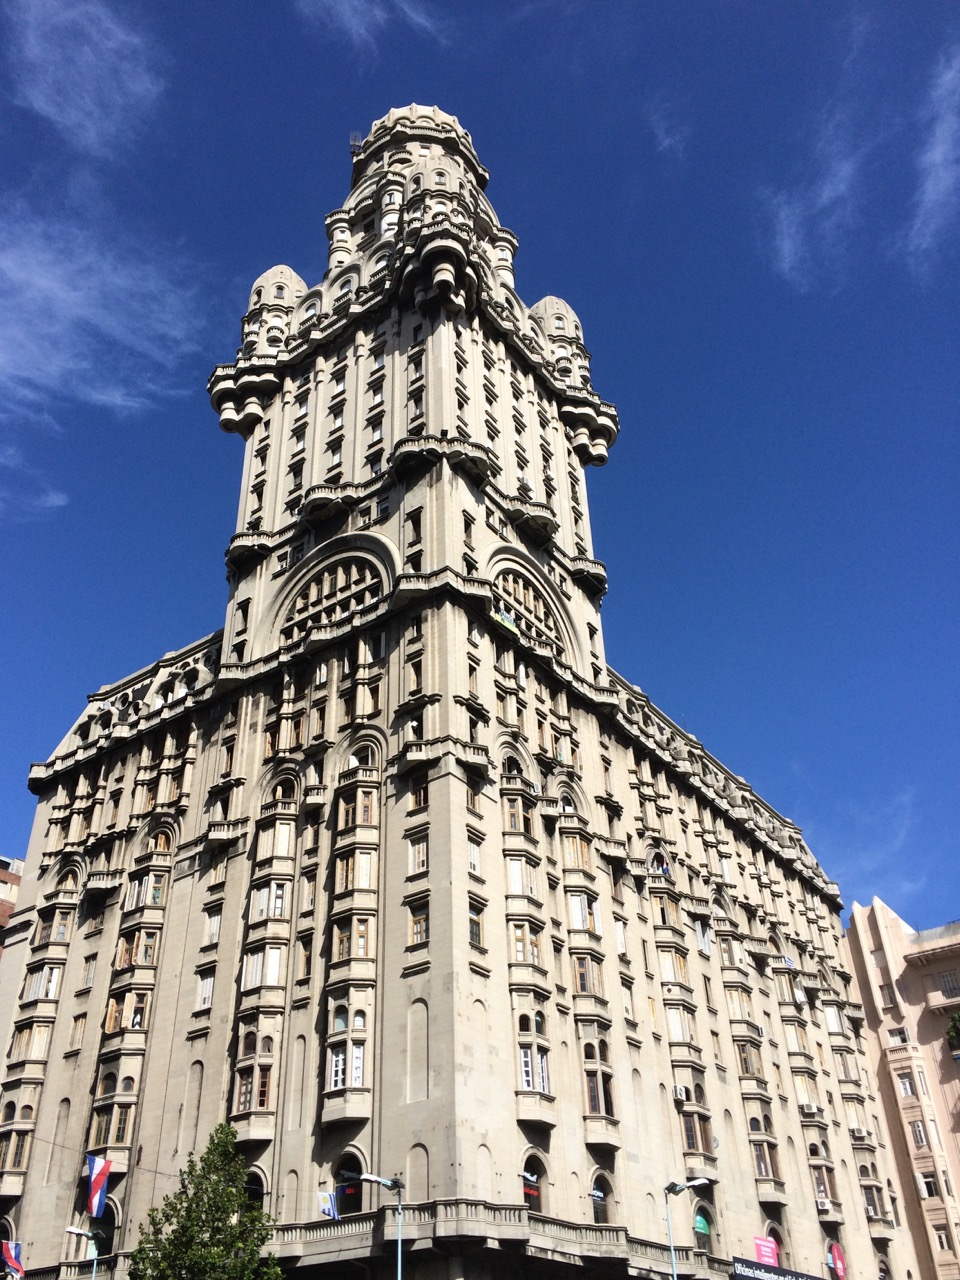 The eclectic Palacio Salvo is the most recognizable one